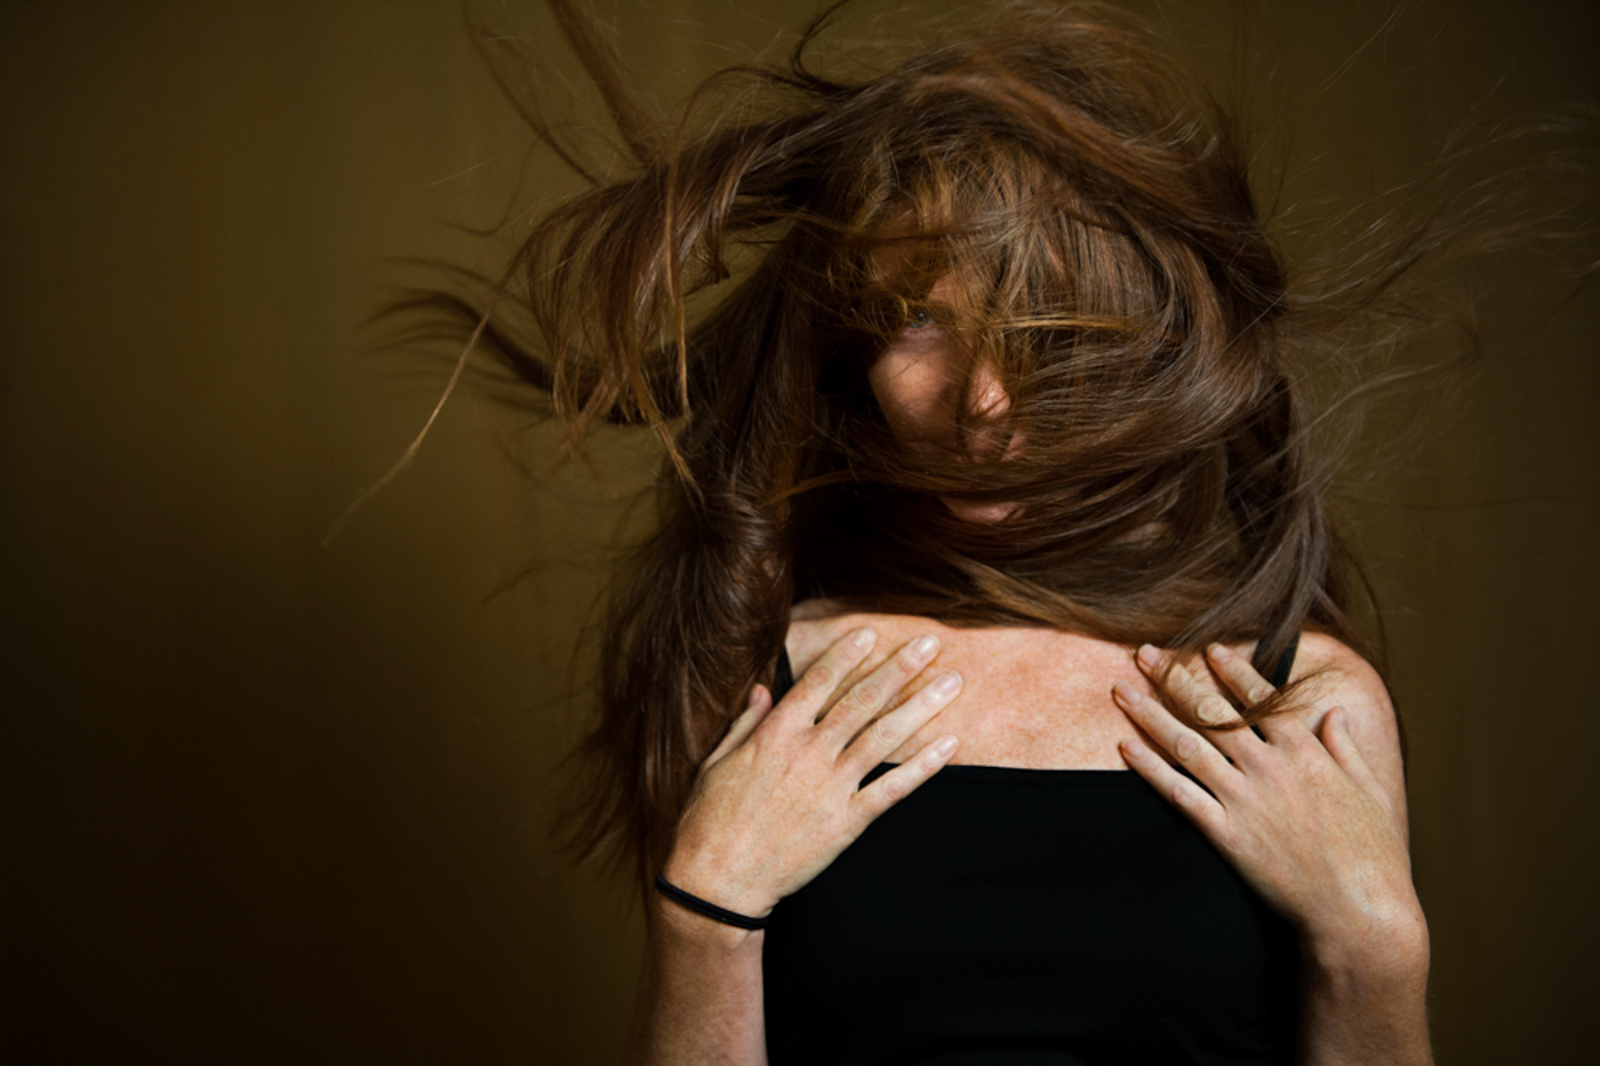 Portrait of woman with long messy hair covering her face